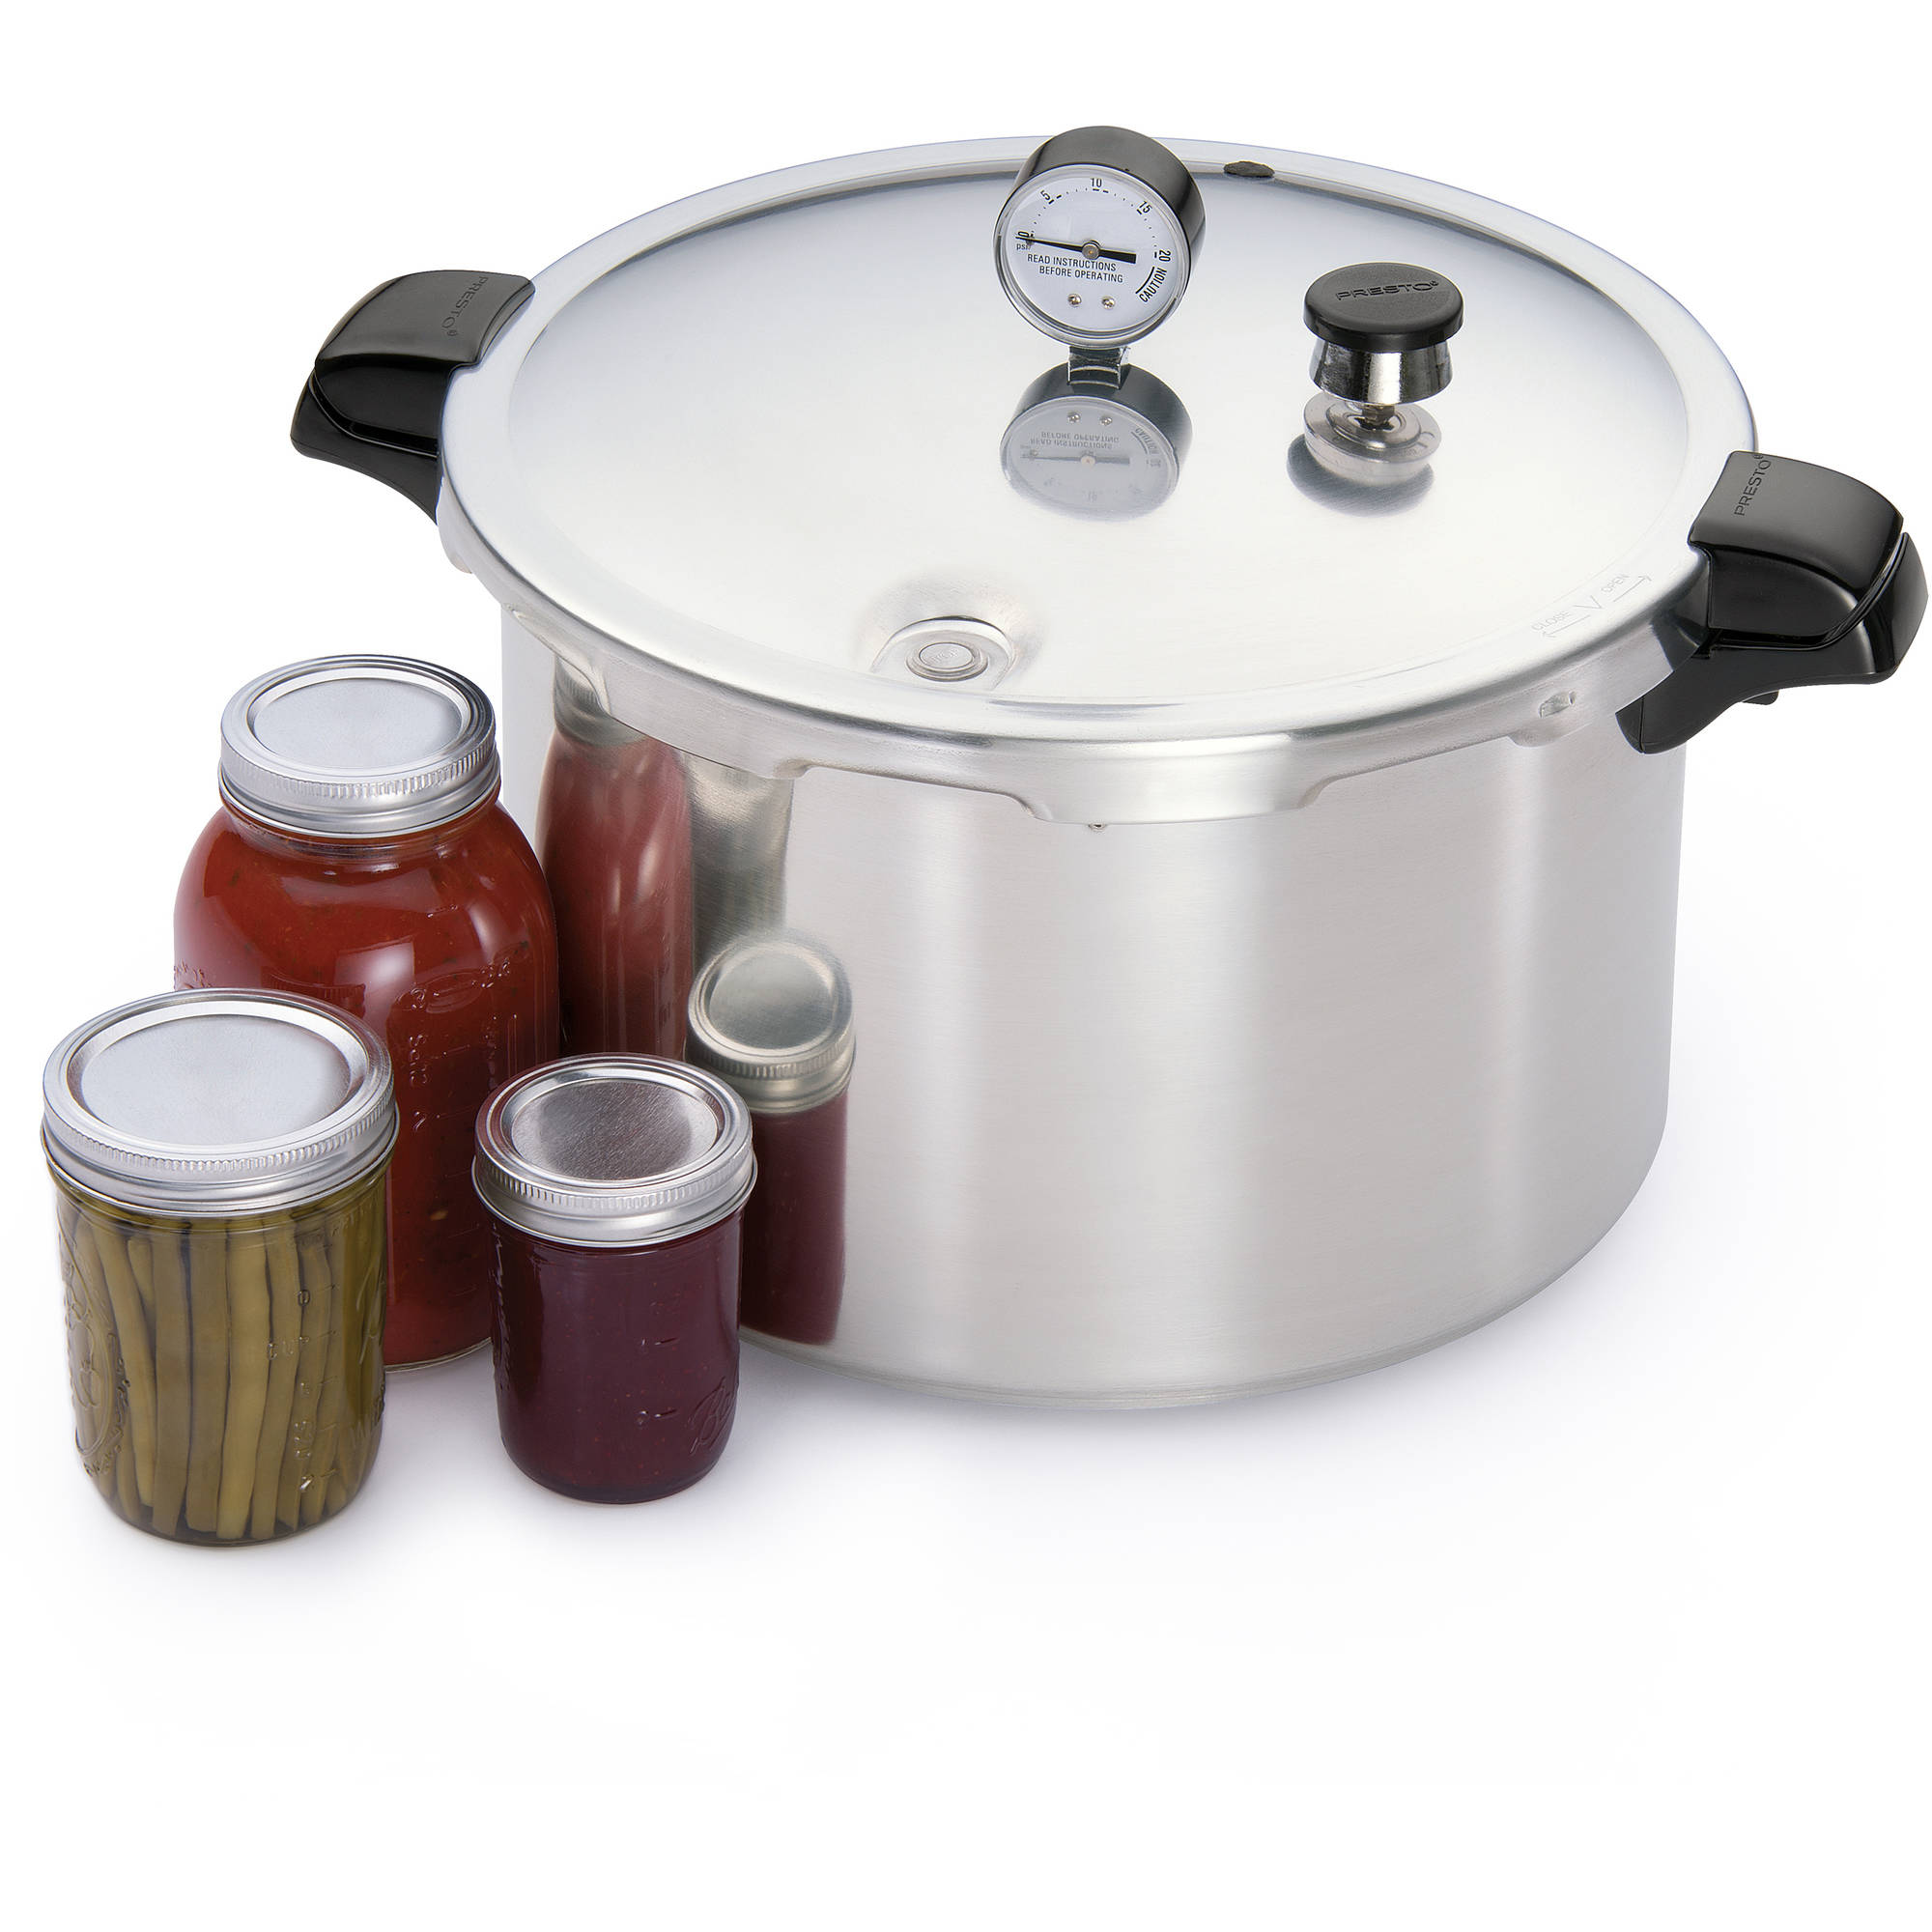 Uncategorized Presto Kitchen Appliances presto kitchen appliances 16 quart aluminum pressure cooker